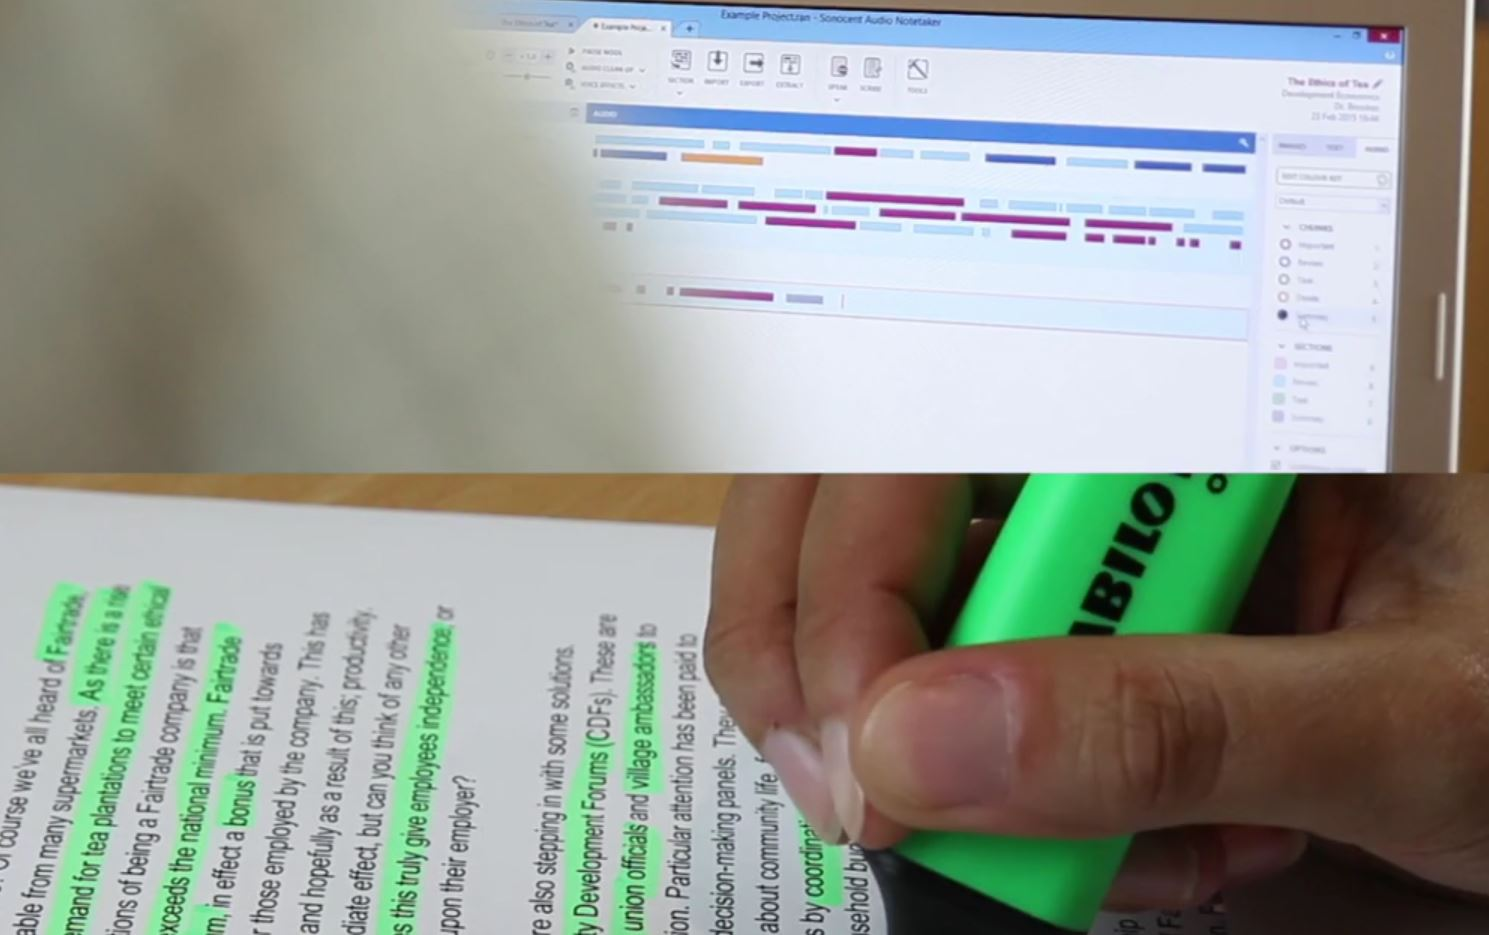 Highlighting text by hand and digitally